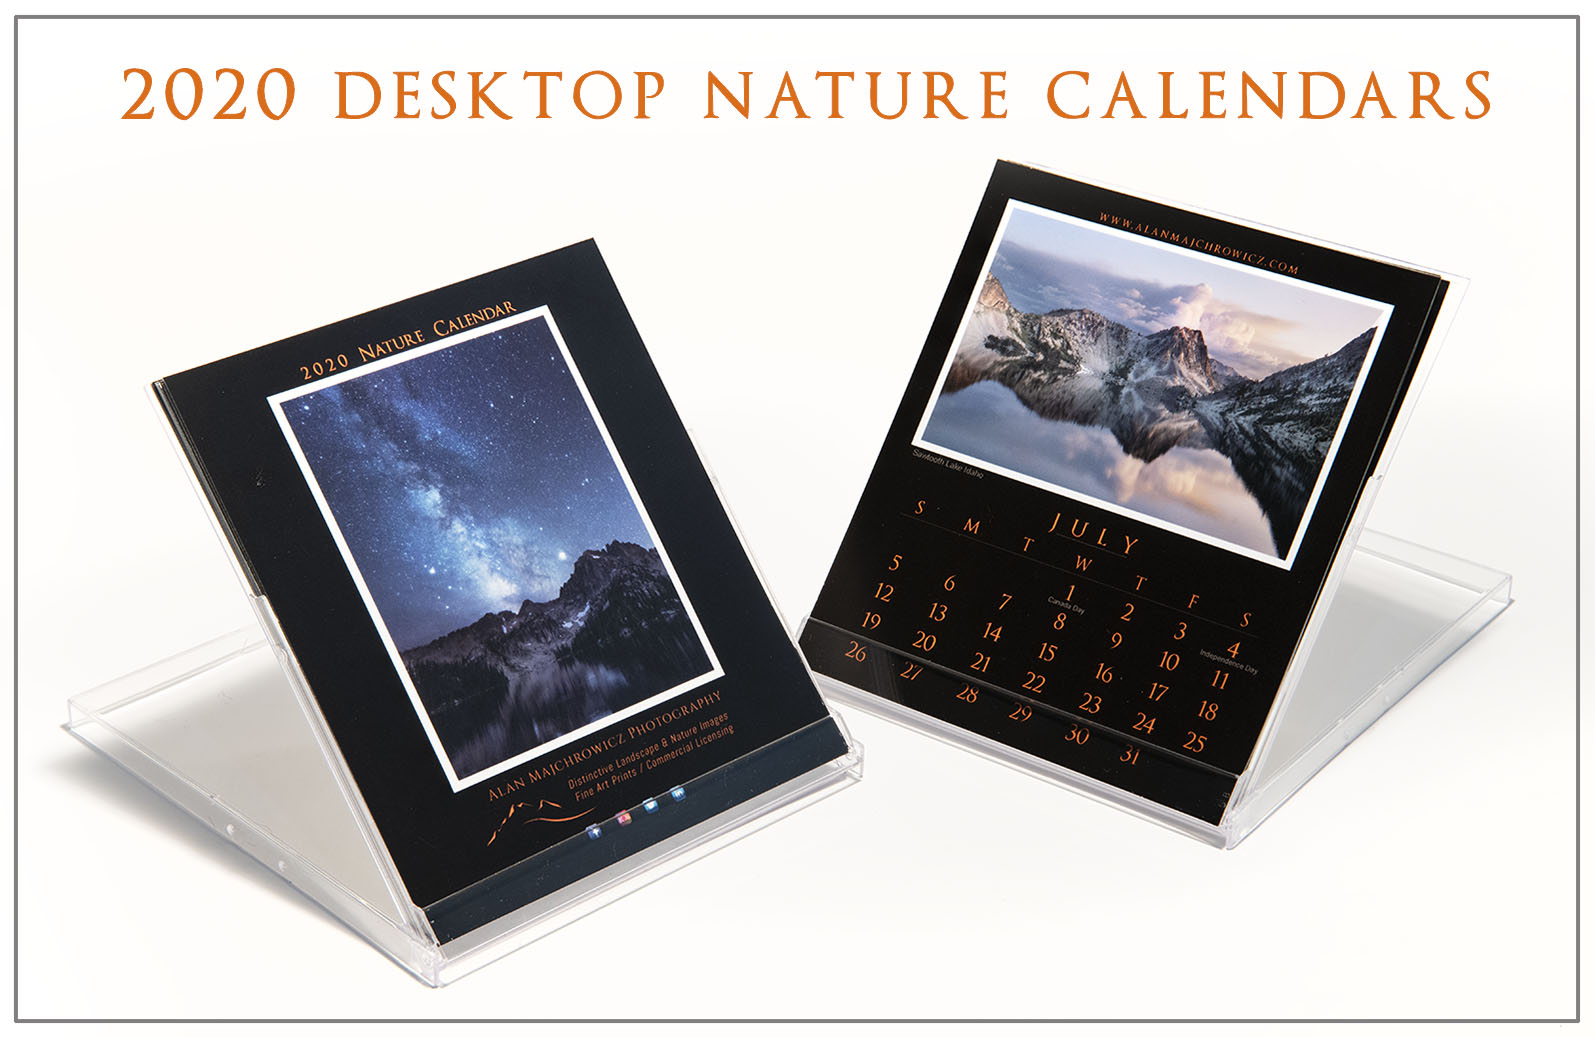 2020 Desktop Nature Calendar